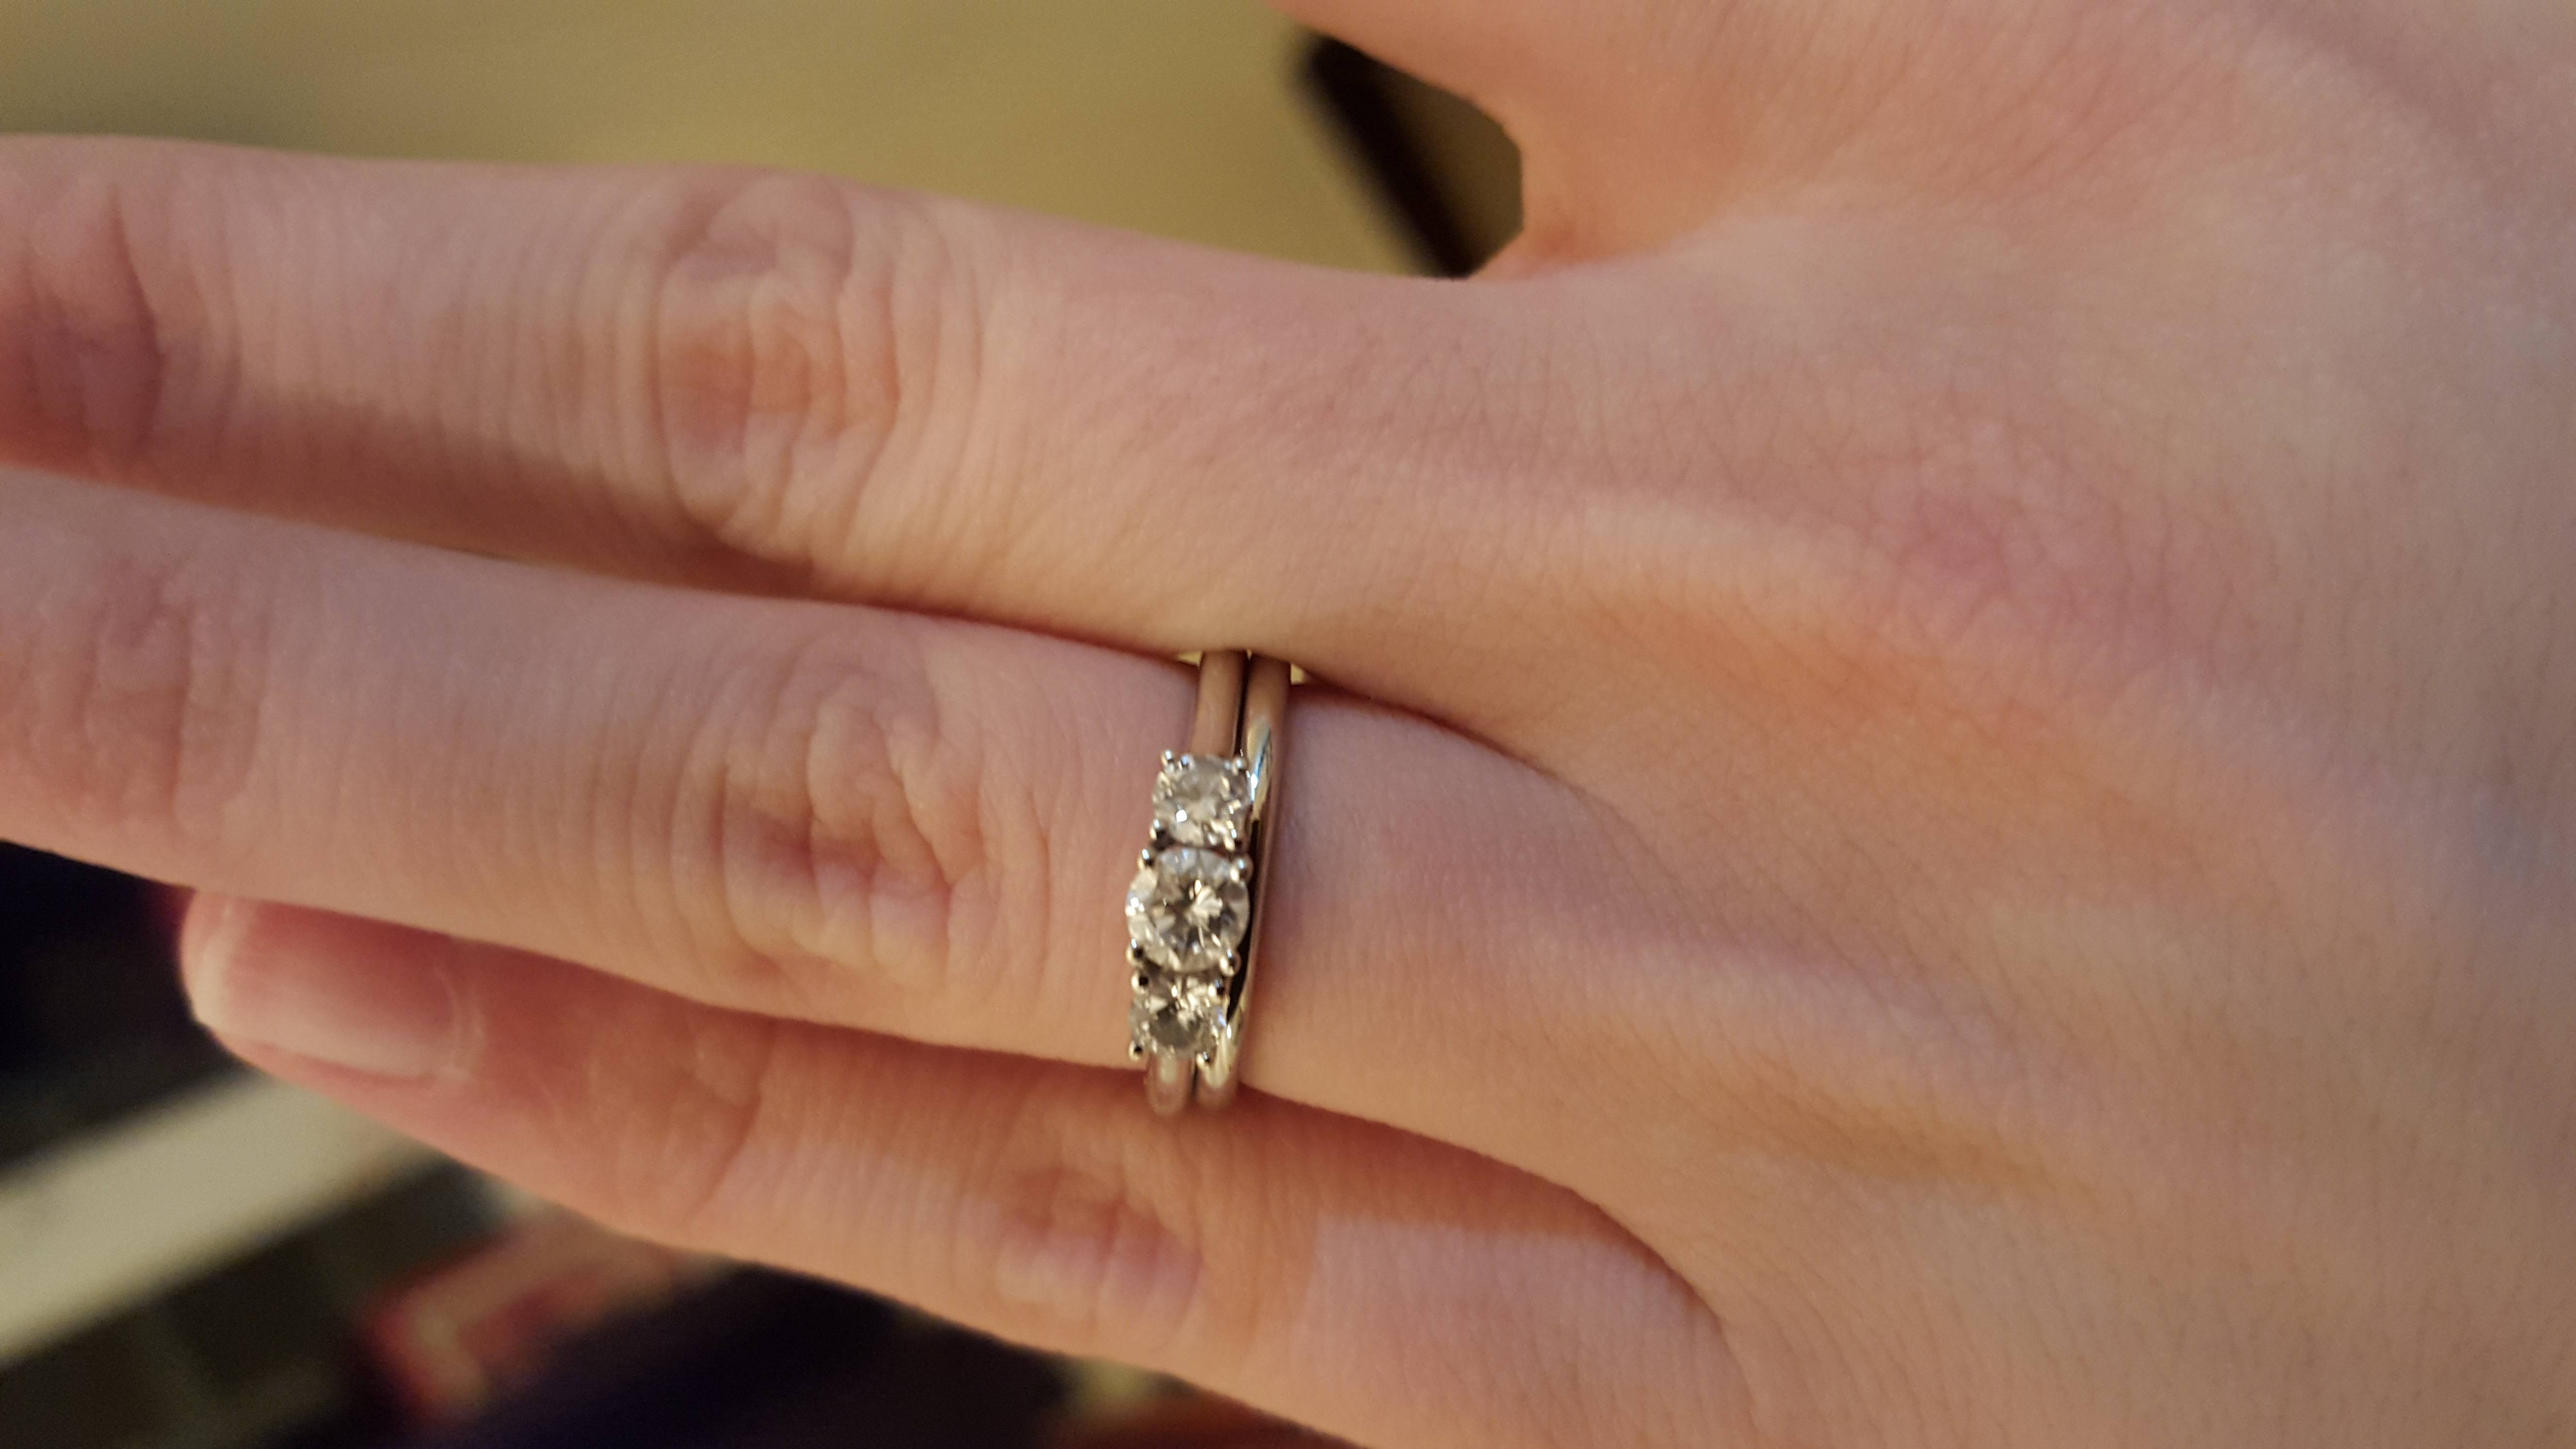 What Wedding Band To Go With A 3 Stone Engagement Ring? – Weddingbee Regarding Three Stone Engagement Rings With Wedding Band (View 15 of 15)